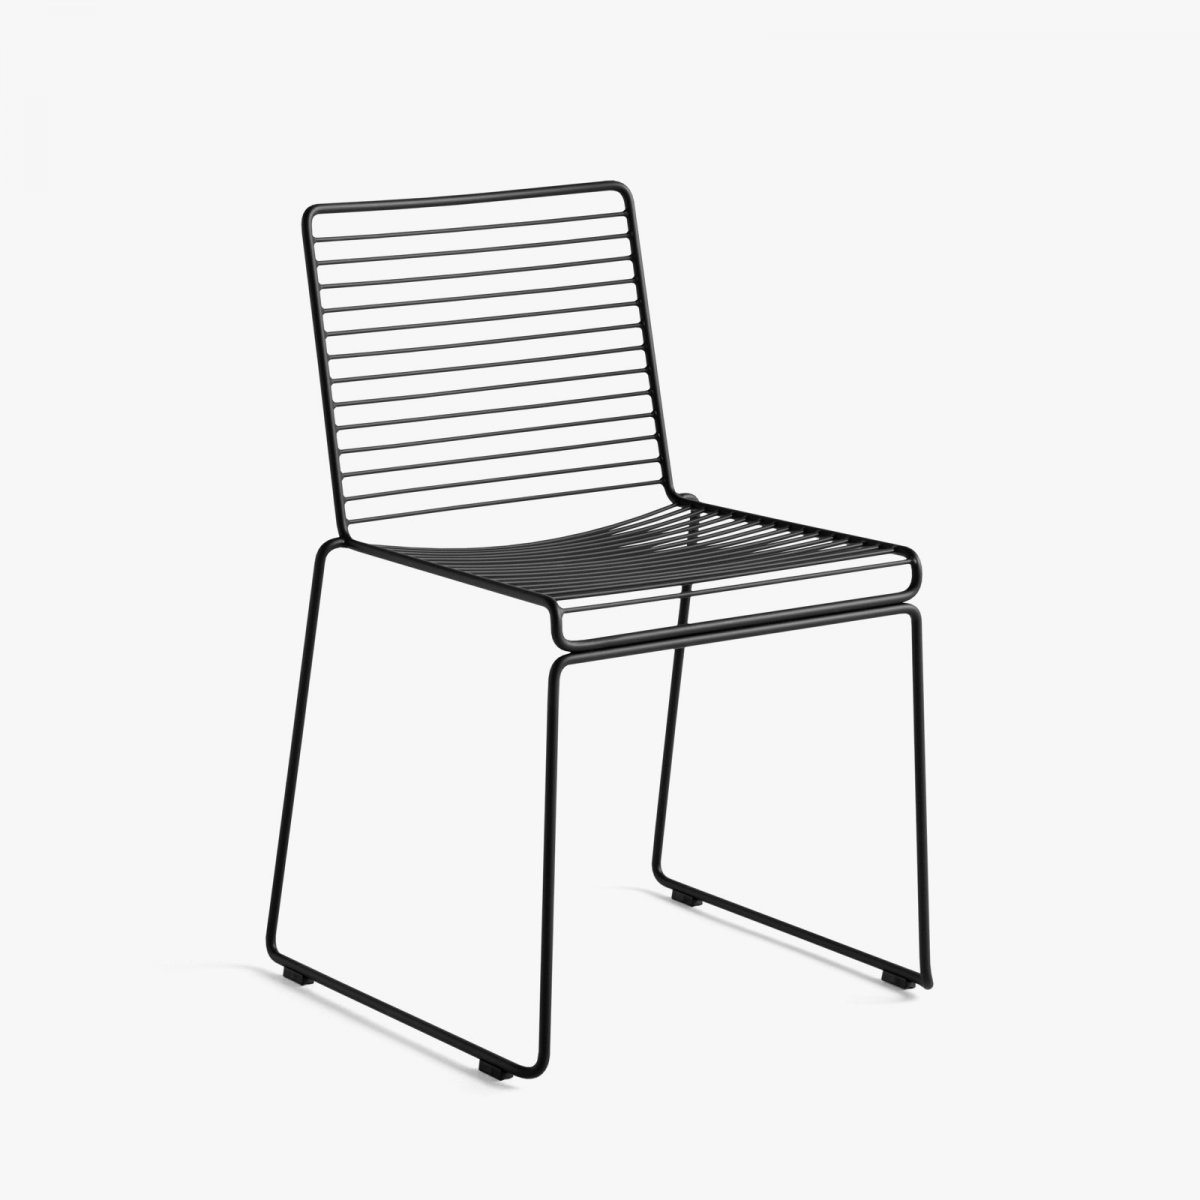 Hee Dining Chair, black.